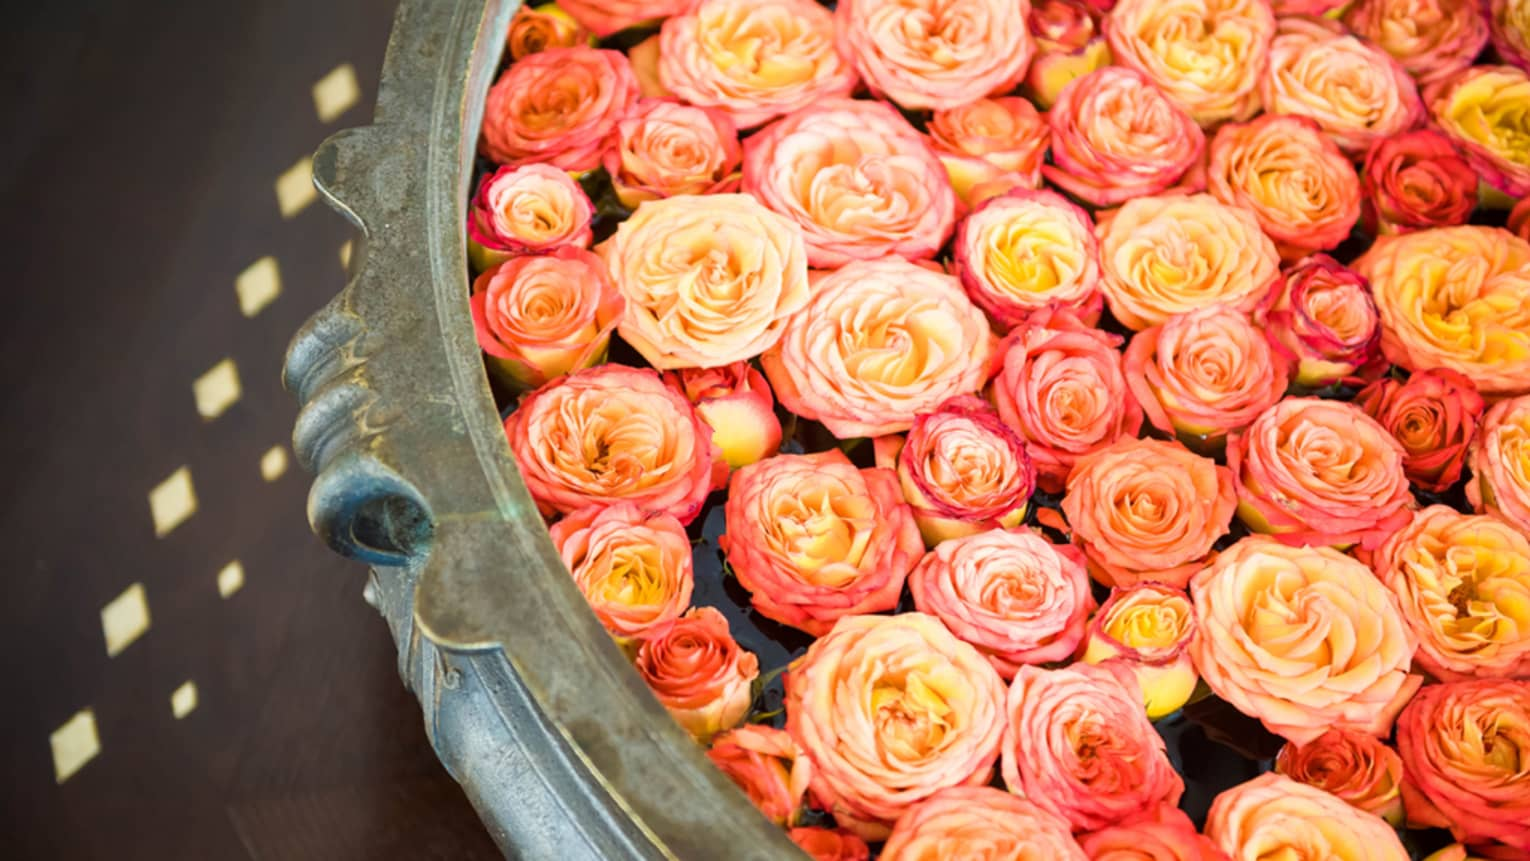 A decorative bowl of water with dozens of small, floating pink-and-yellow rose heads